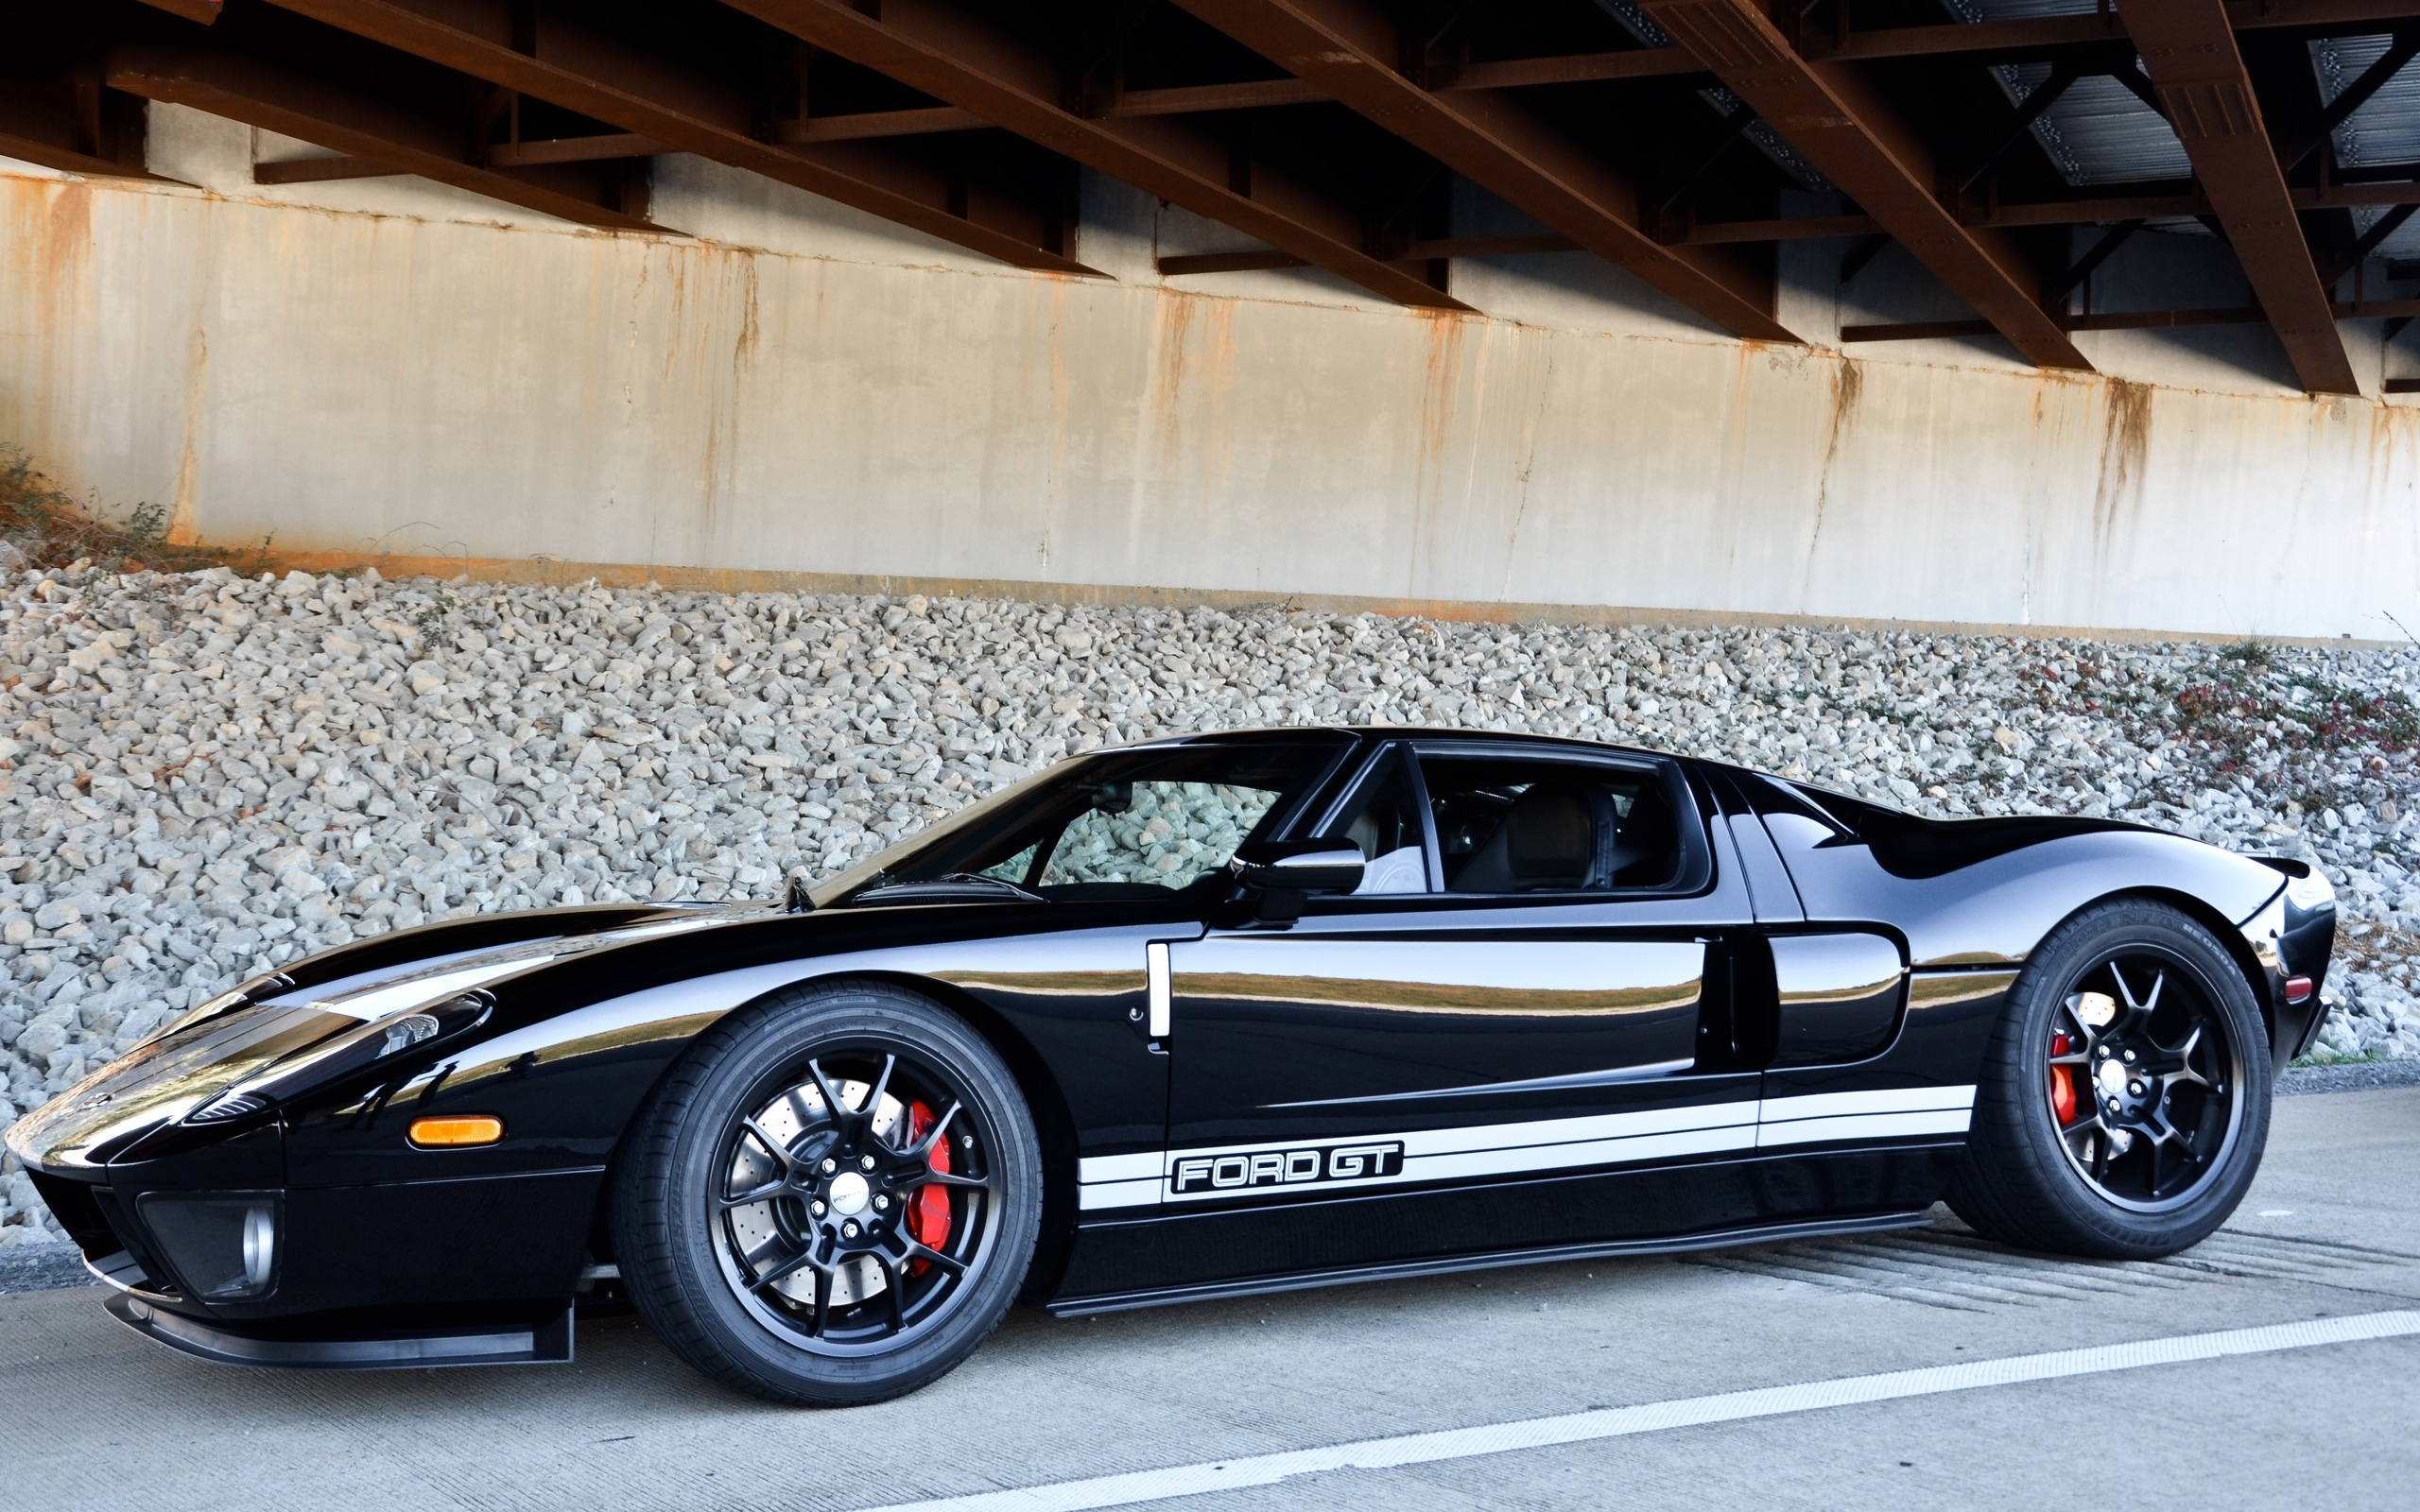 Ford Gt Forum >> 90 Ford GT HD Wallpapers | Backgrounds - Wallpaper Abyss